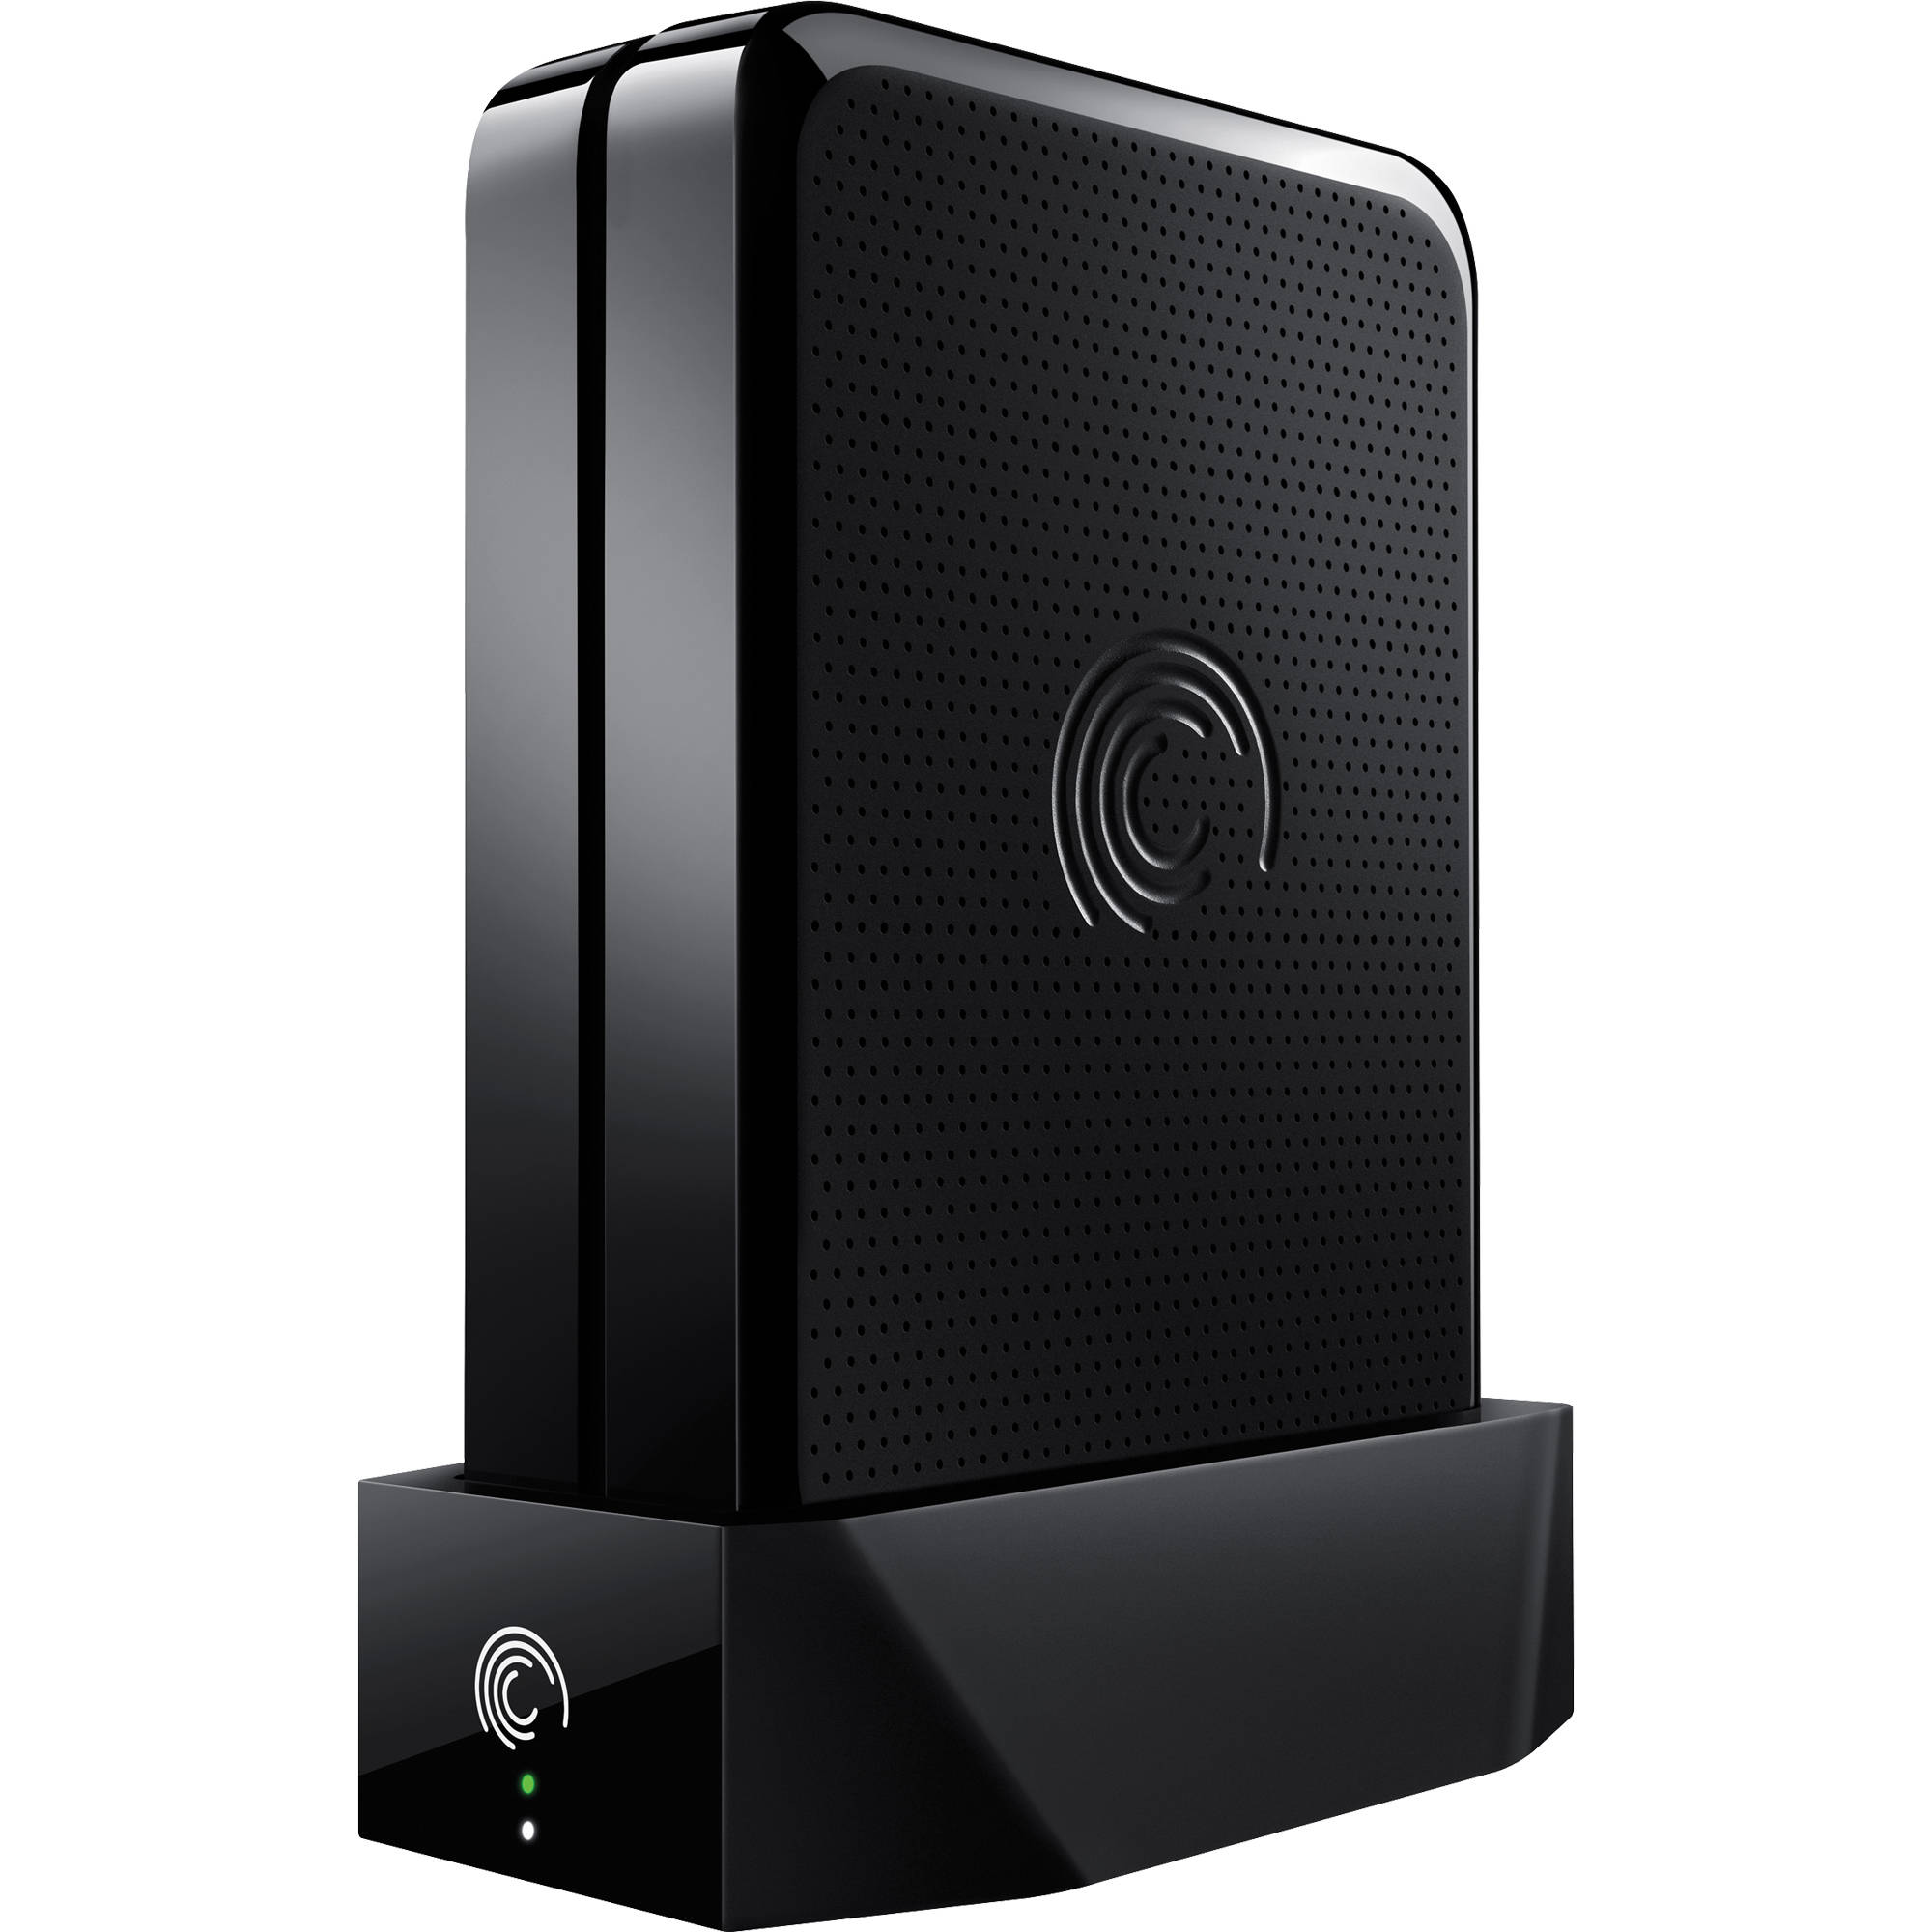 Seagate freeagent goflex home manual.